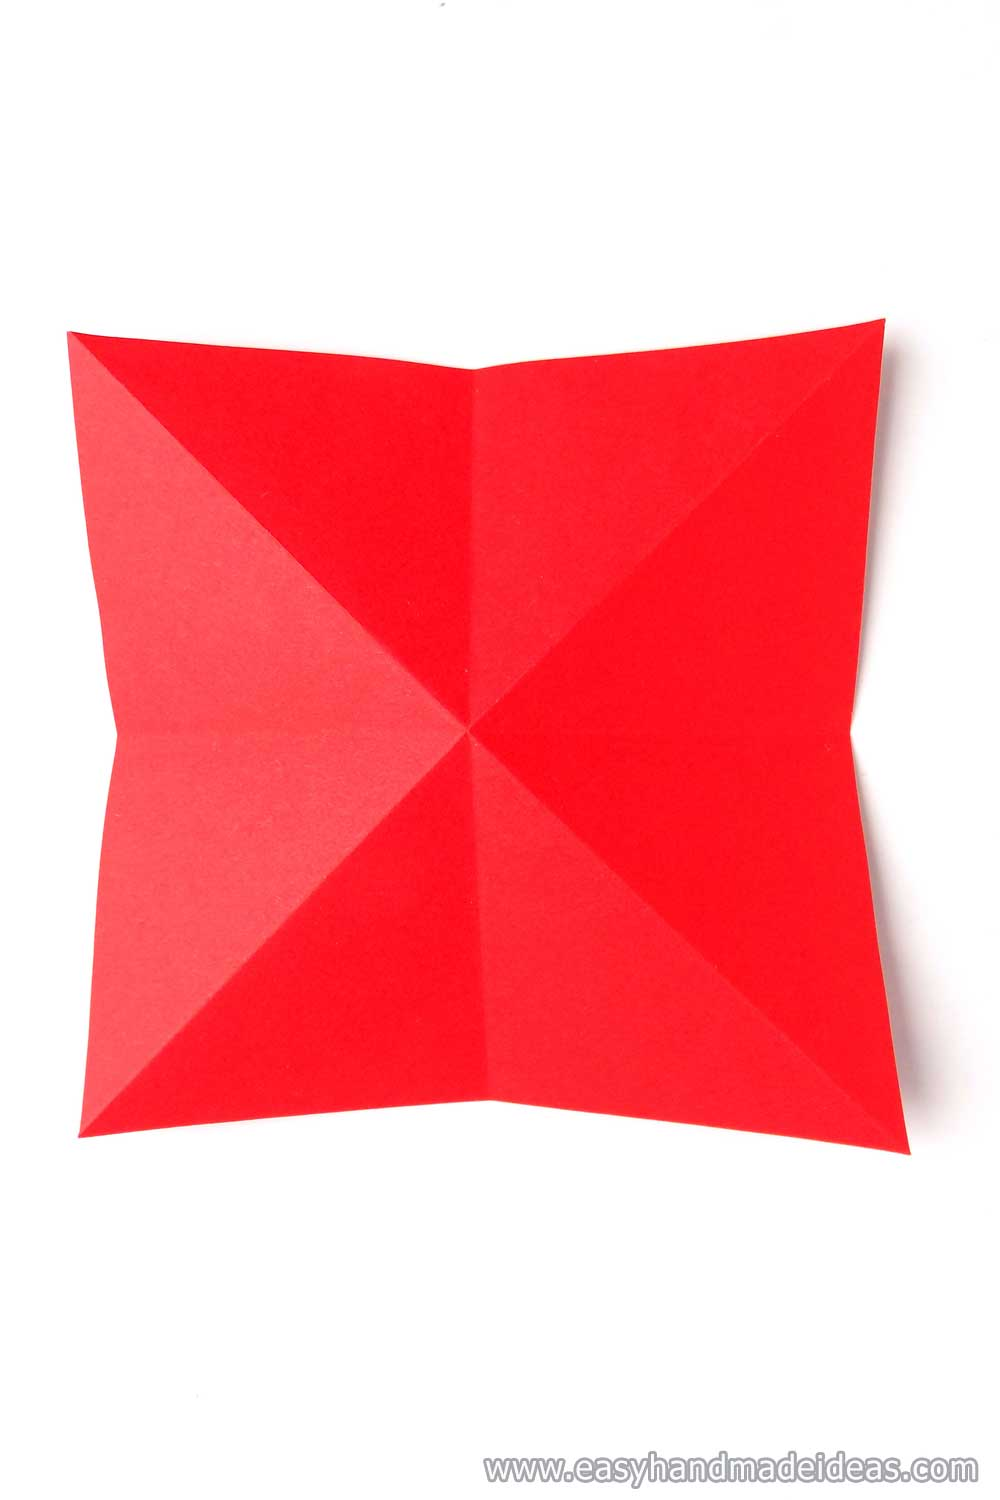 Square with a Bent Middle on the Diagonal